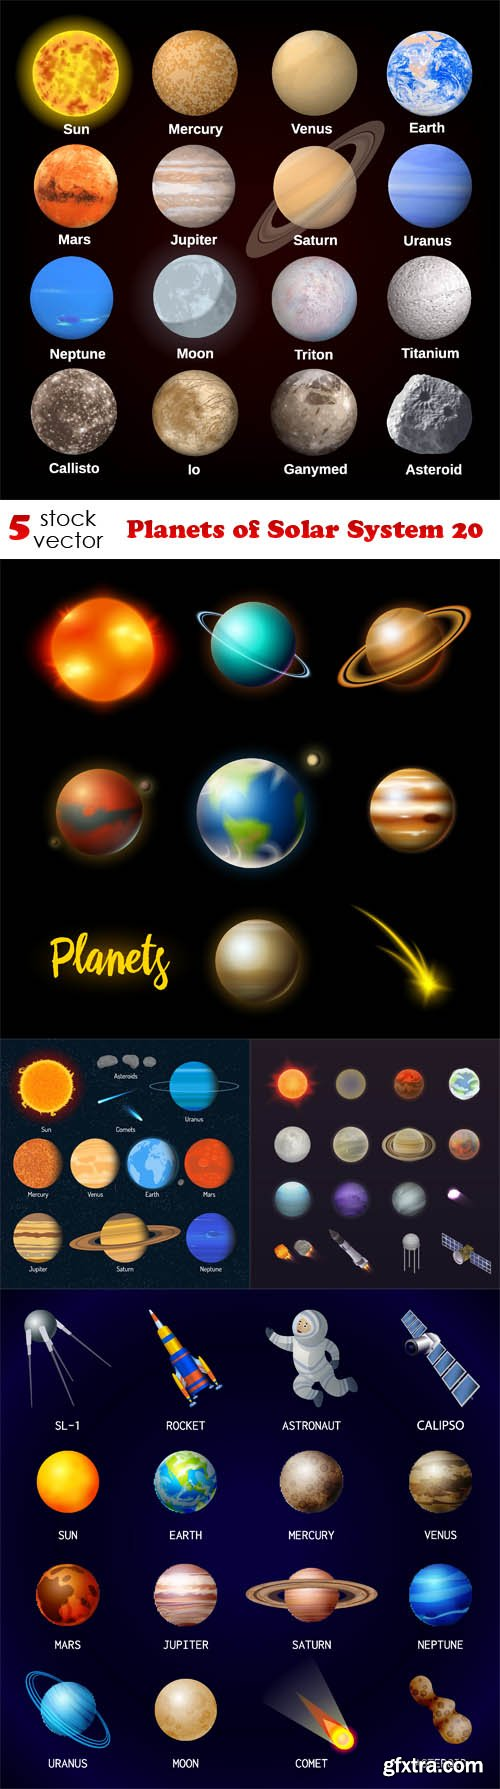 Vectors - Planets of Solar System 20